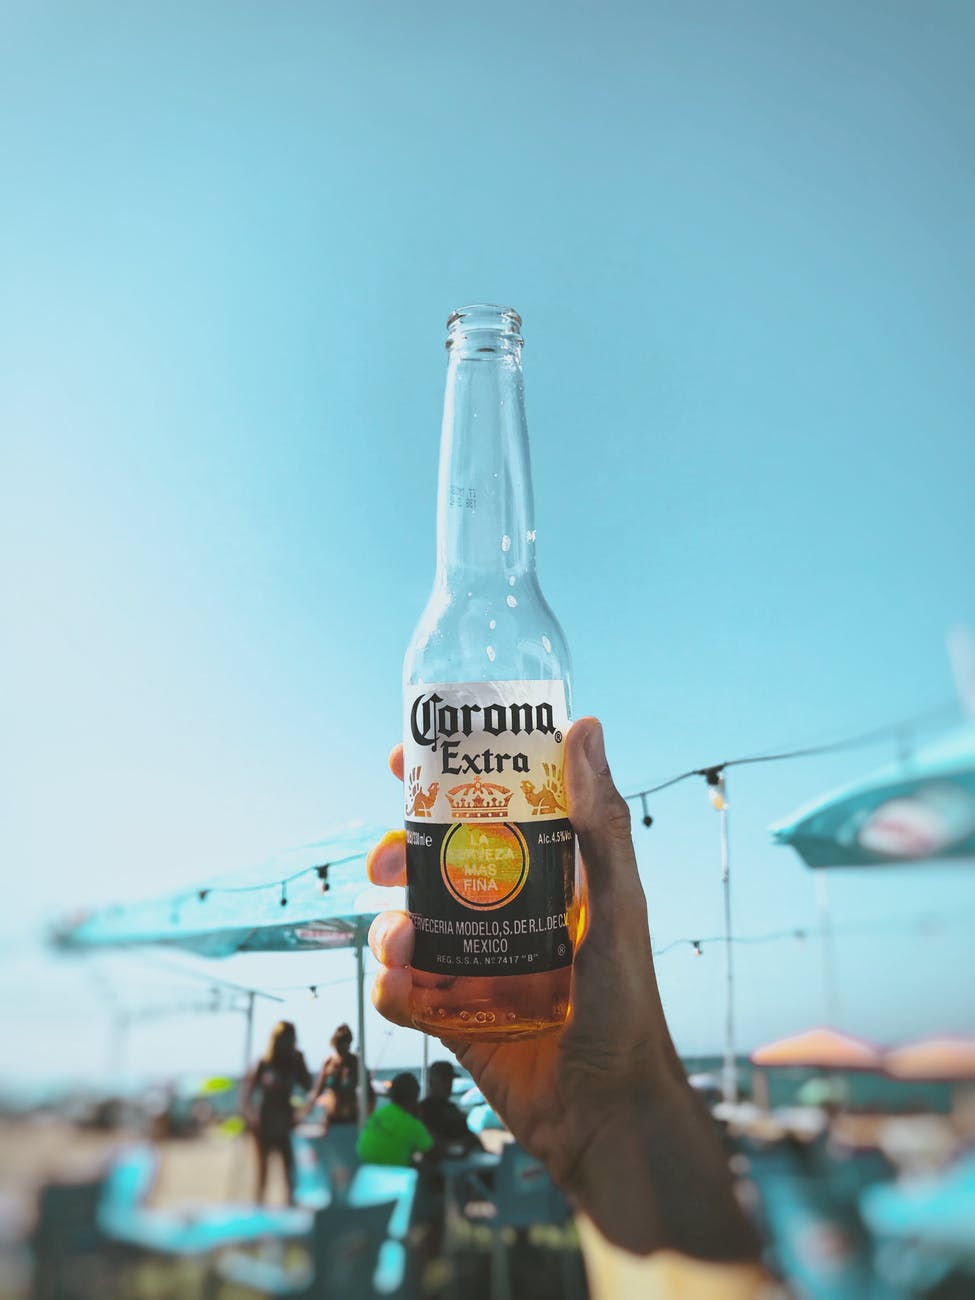 Corona Reports Huge Losses After Outbreak Of Coronavirus